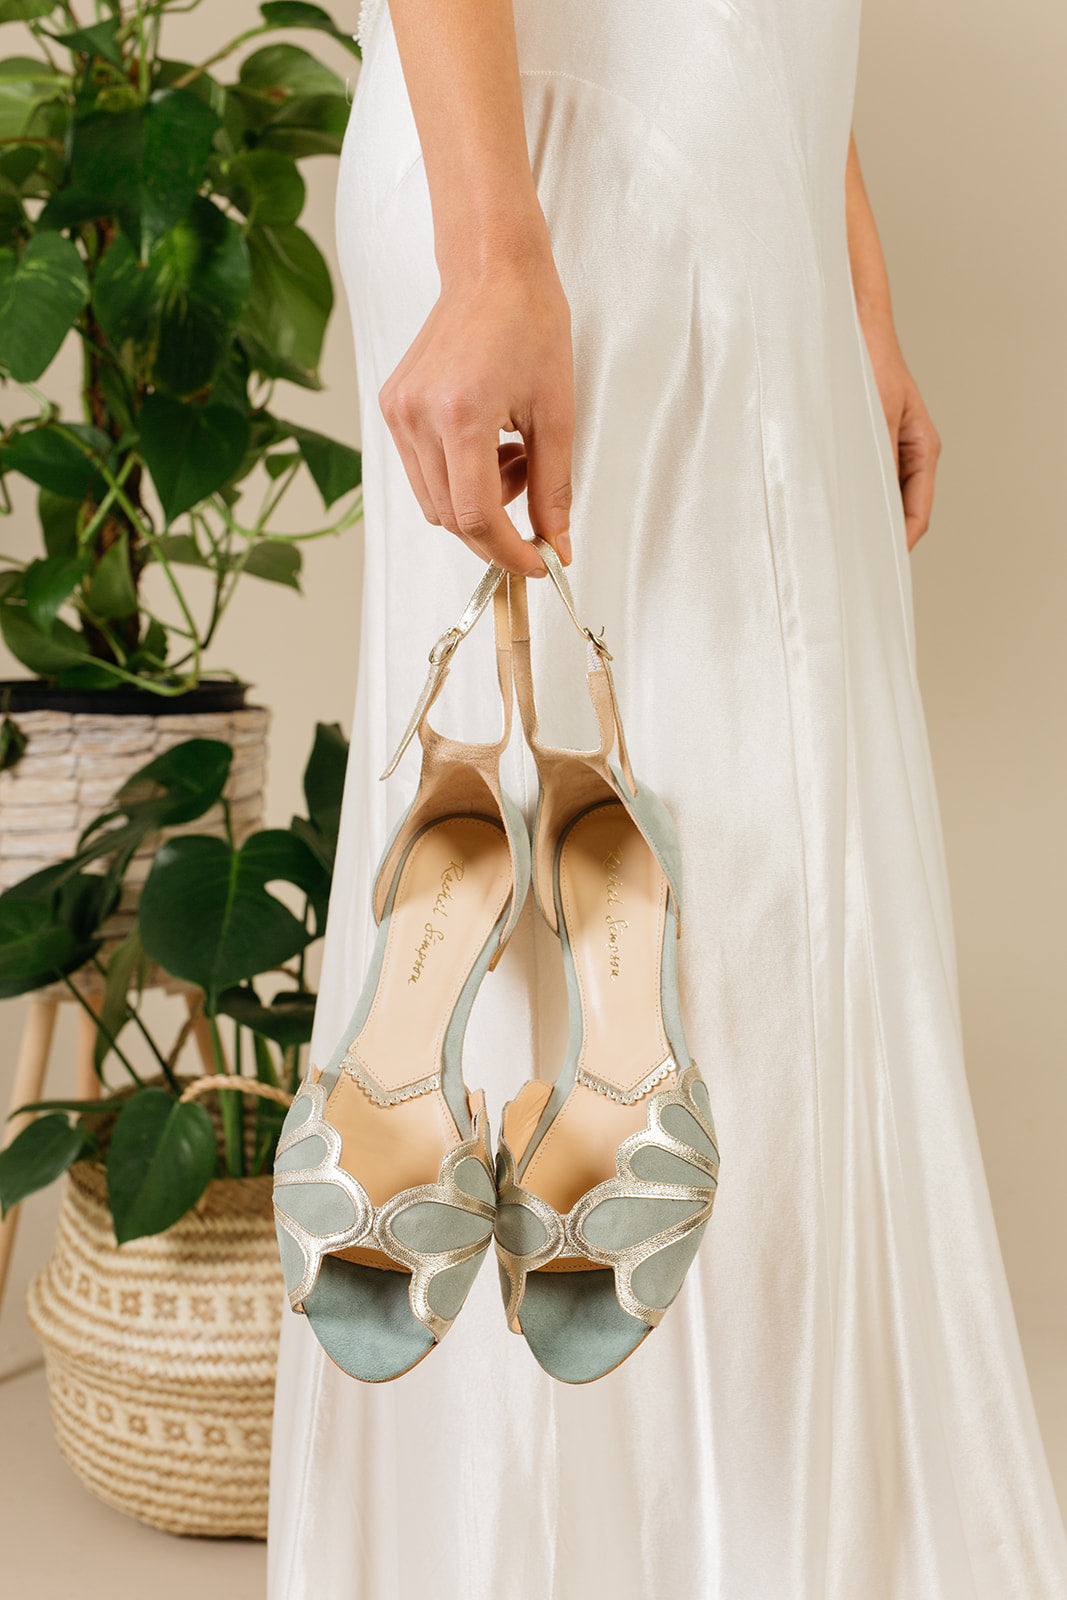 Rachel Simpson Willow mint green flat wedding shoes